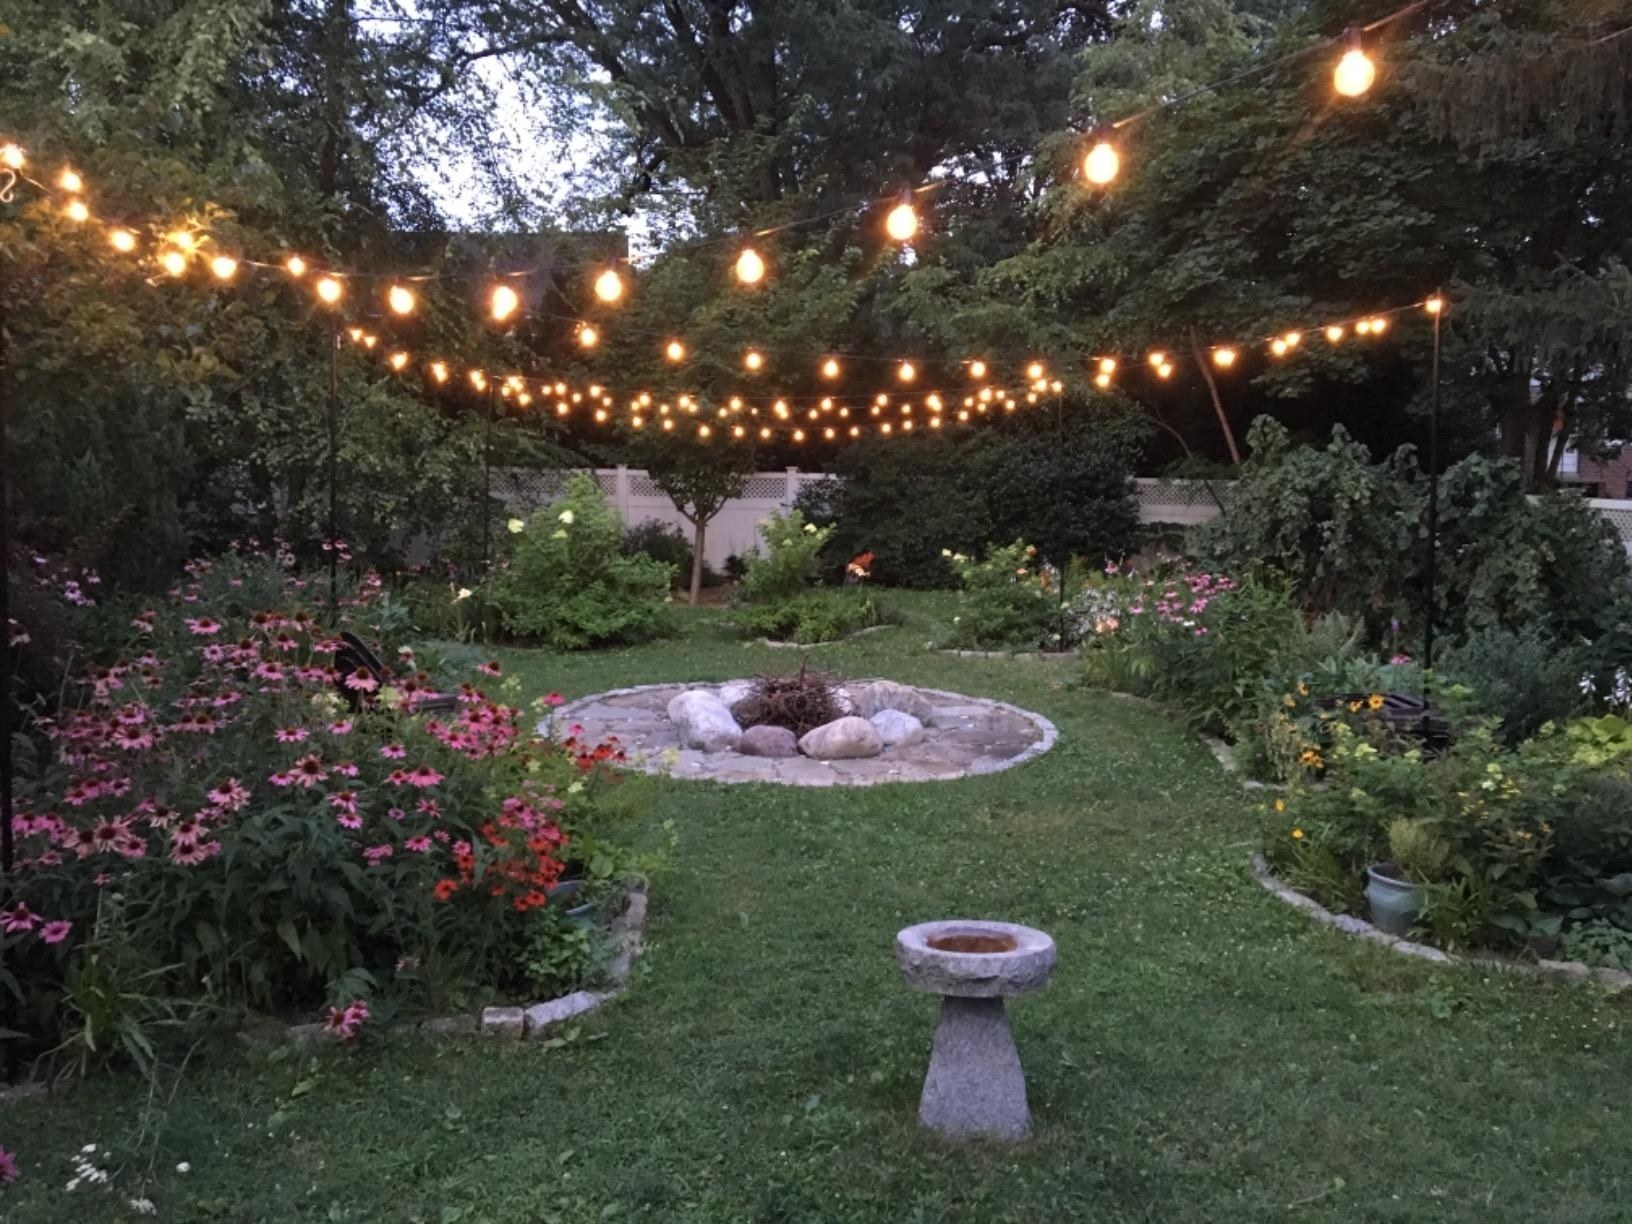 A garden with string lights overhead.